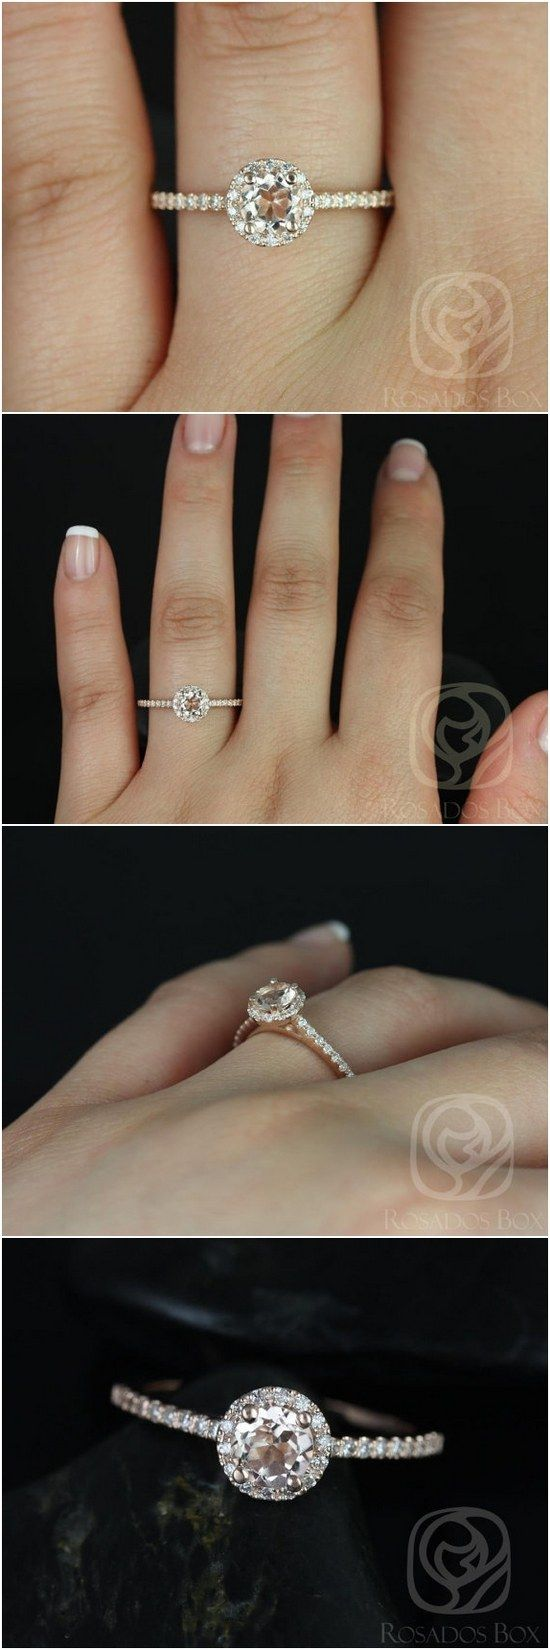 inexpensive wedding rings inexpensive wedding rings 24 Etsy BUDGET FRIENDLY Engagement Rings Under 1